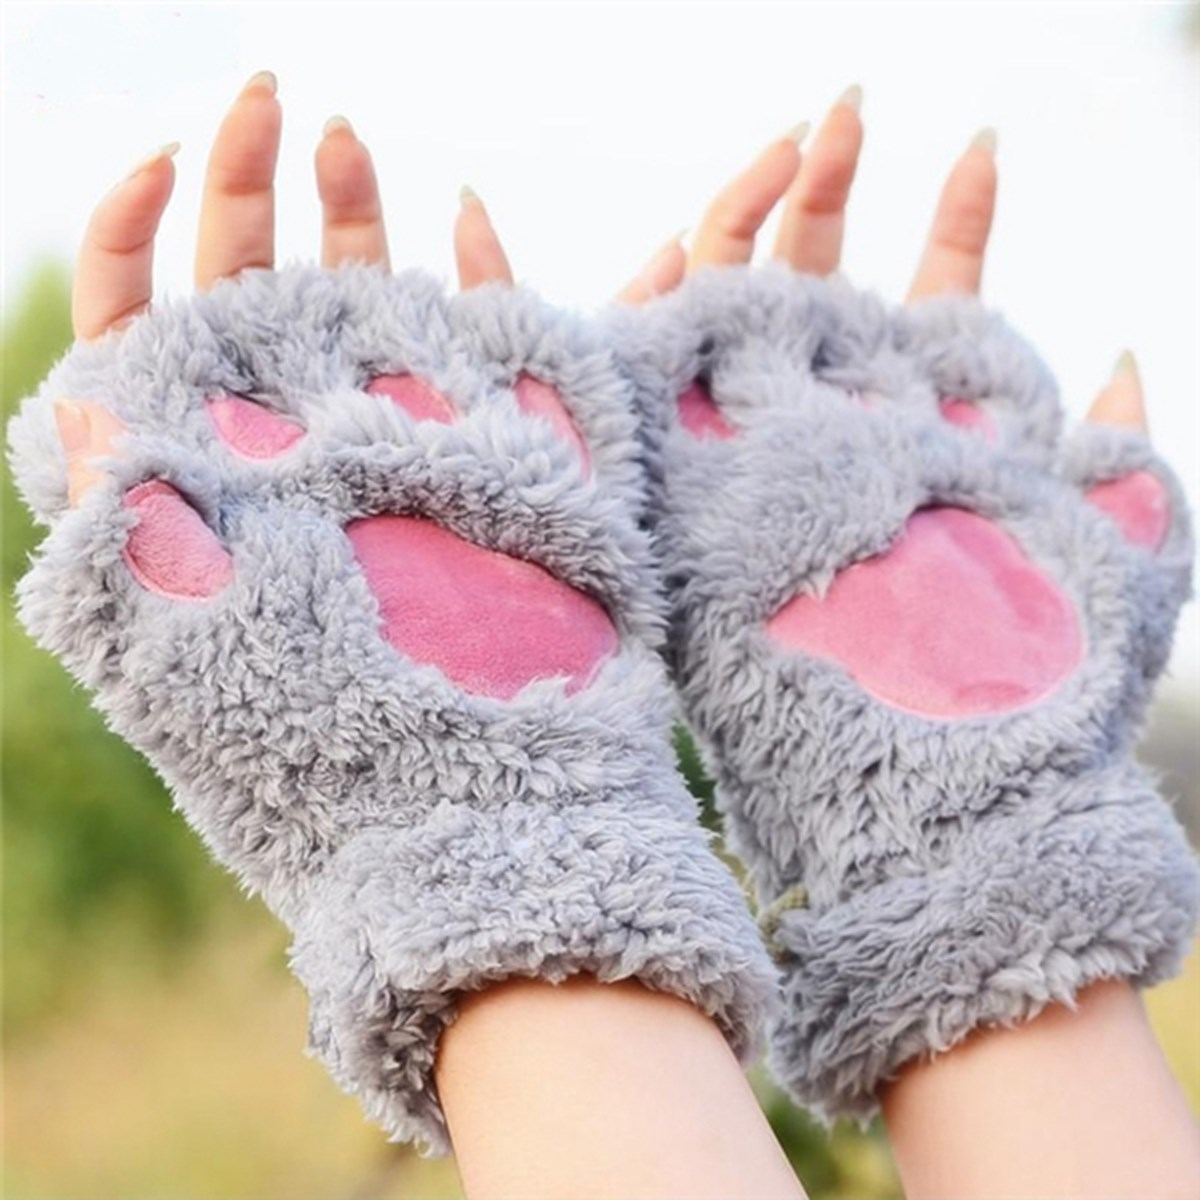 2015 Fluffy Bear Plush Paw Claw Glove Novelty Fingerless Soft Toweling Half Covered Womens Gloves Mittens Fashion Grils Winter(China (Mainland))